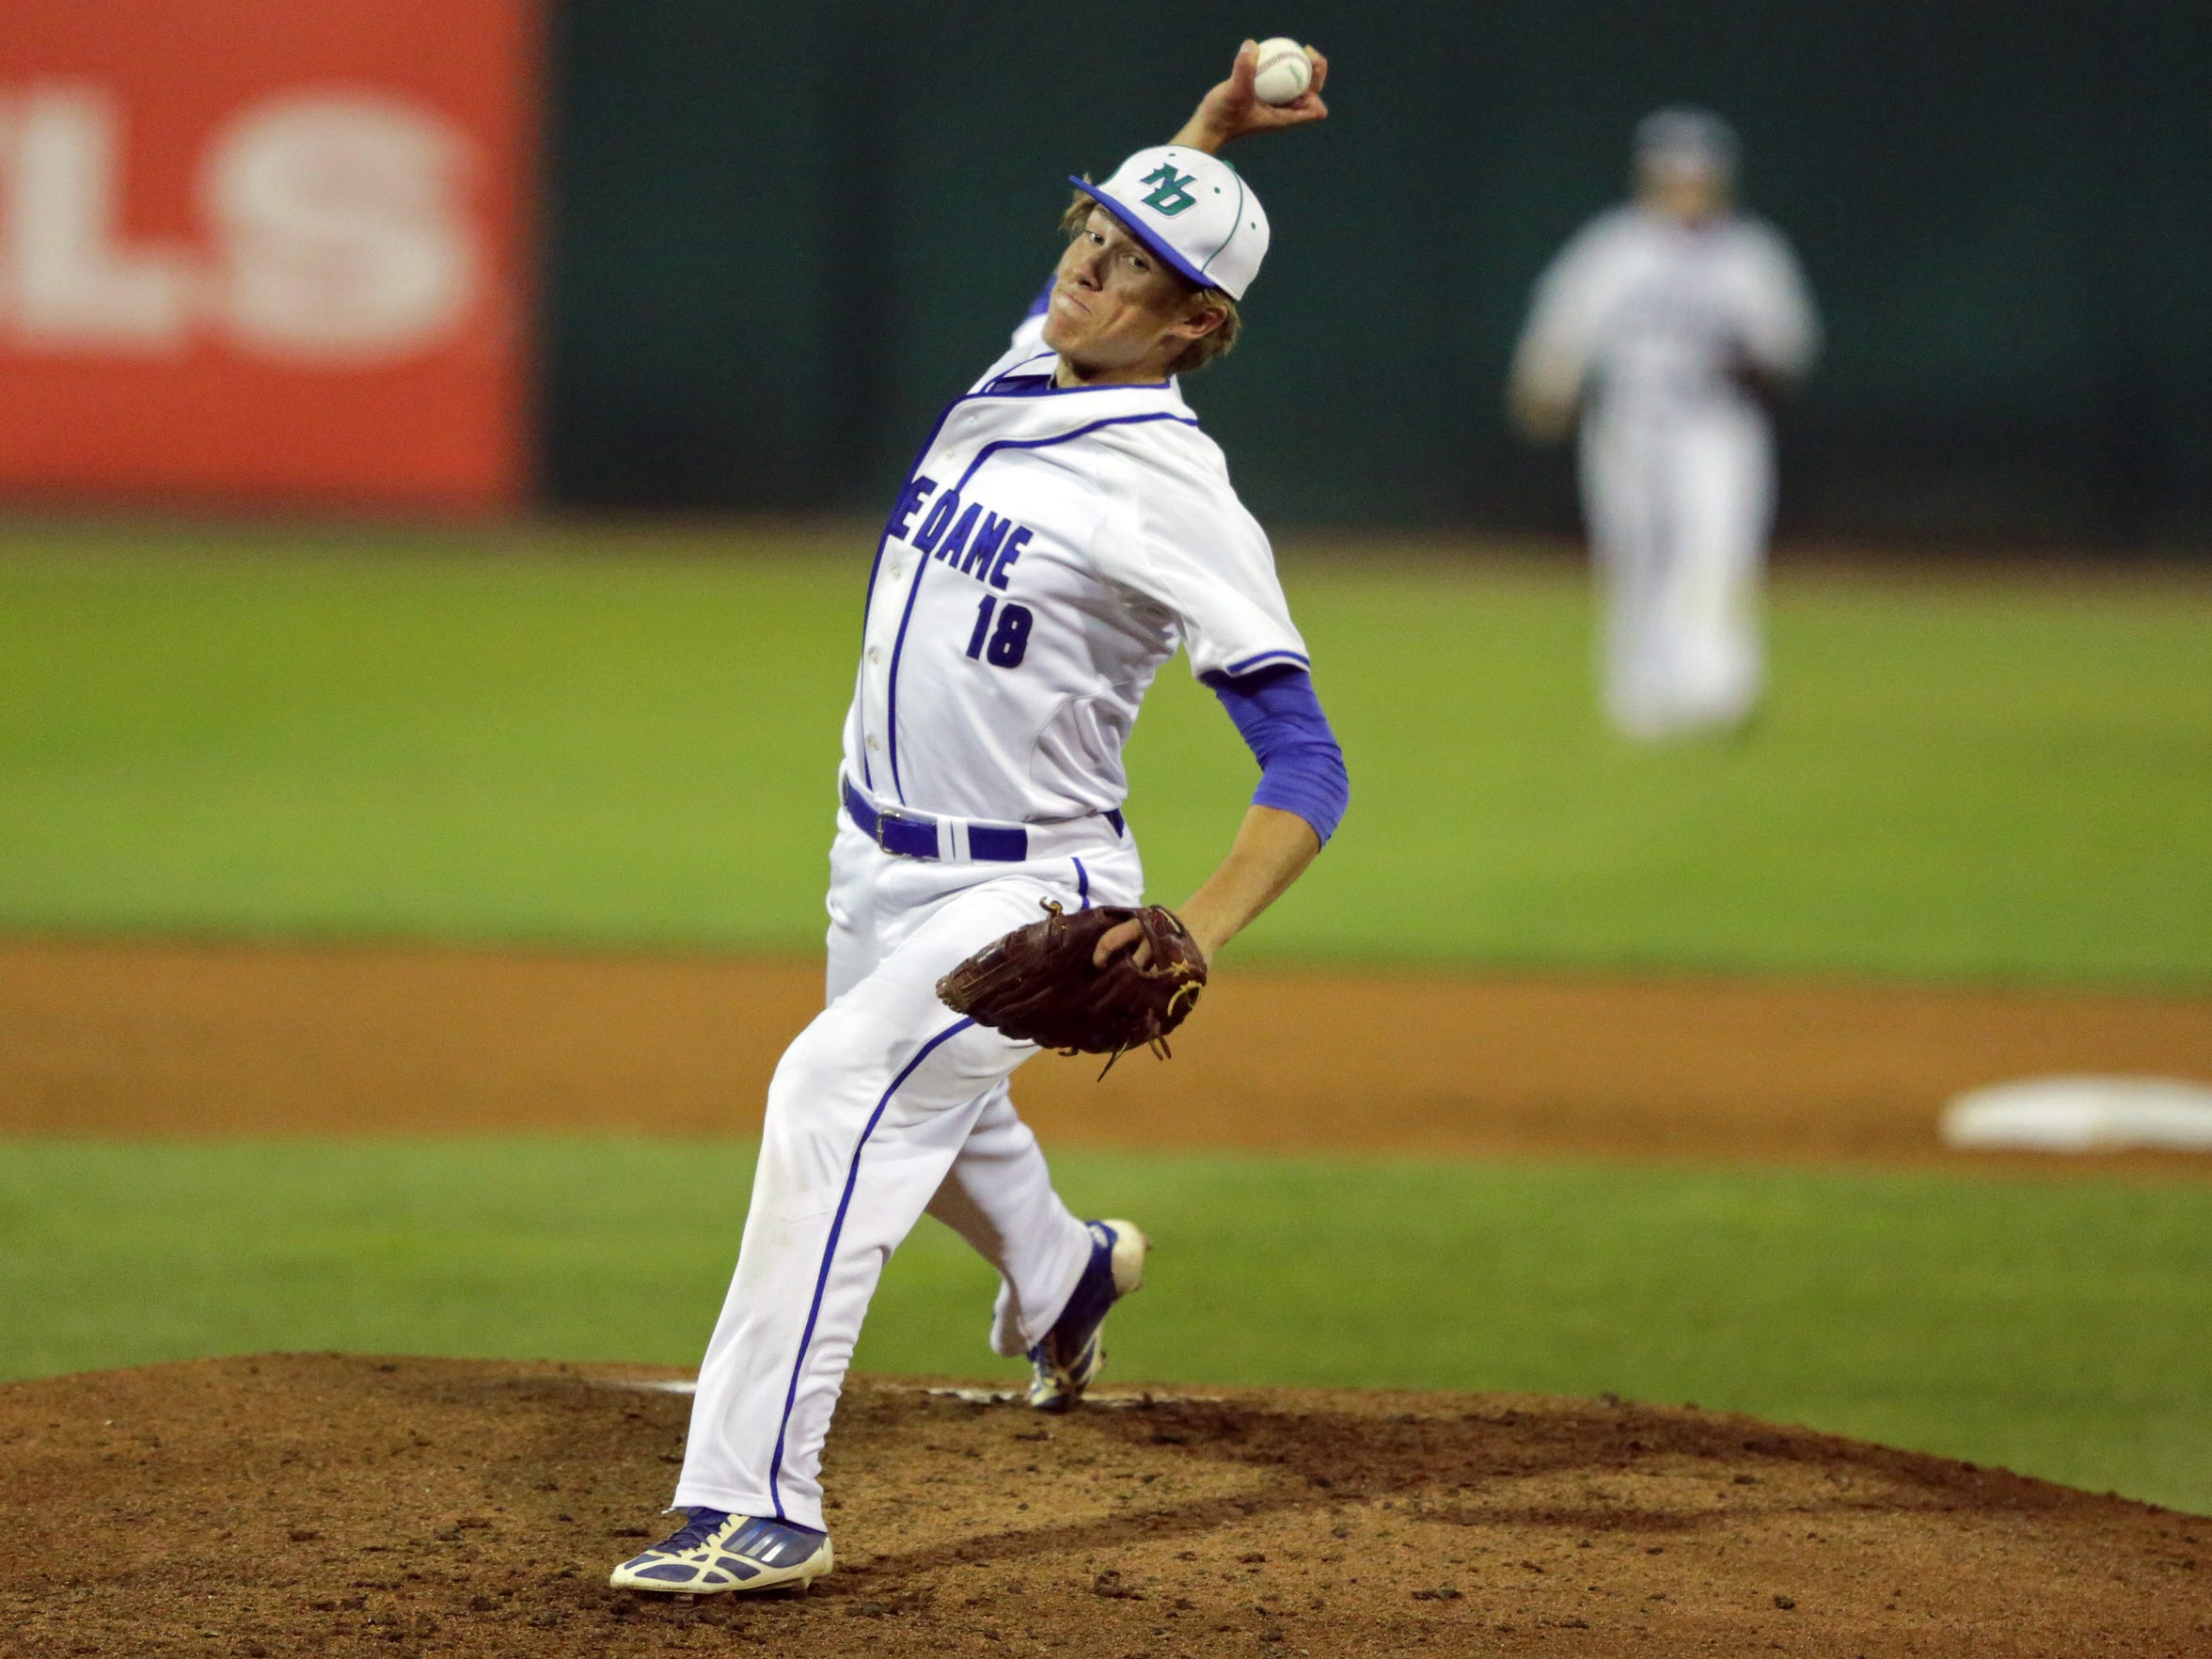 Ty Yewman allowed three hits and struck out 17 as Green Bay Notre Dame beat River Valley in a WIAA Division 2 state baseball semifinal June 17 at Fox Cities Stadium in Grand Chute.